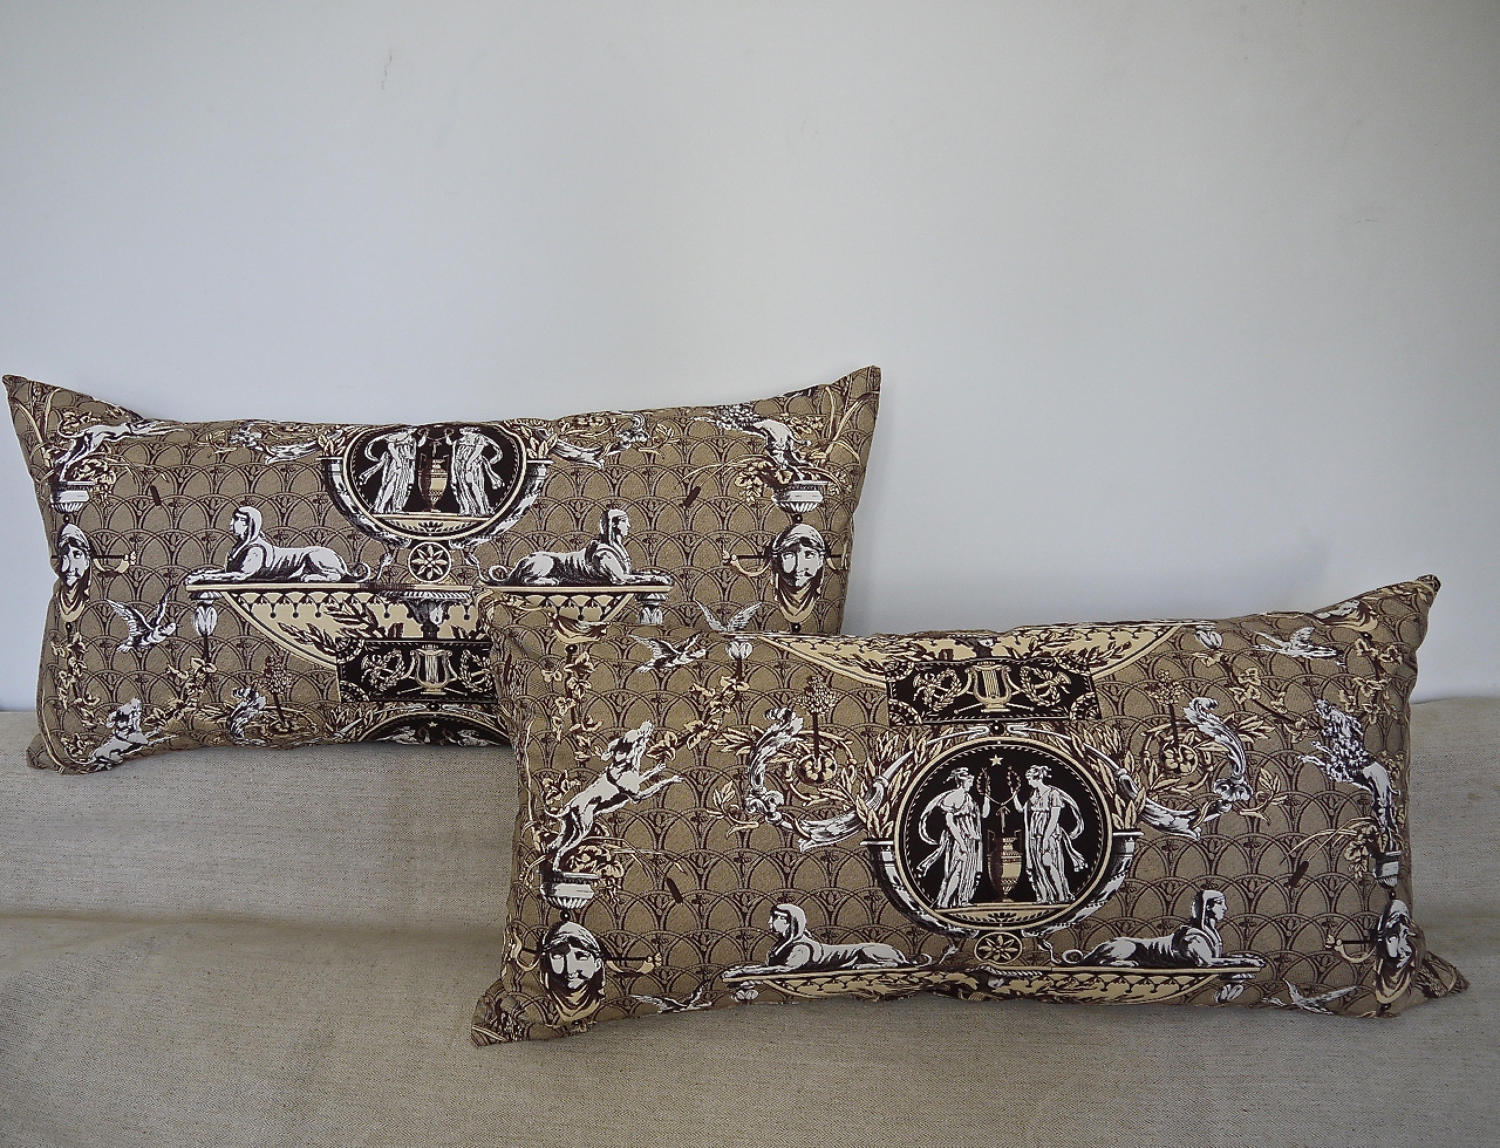 Pair of 1980s Brunschwig & Fils brown toile cushions